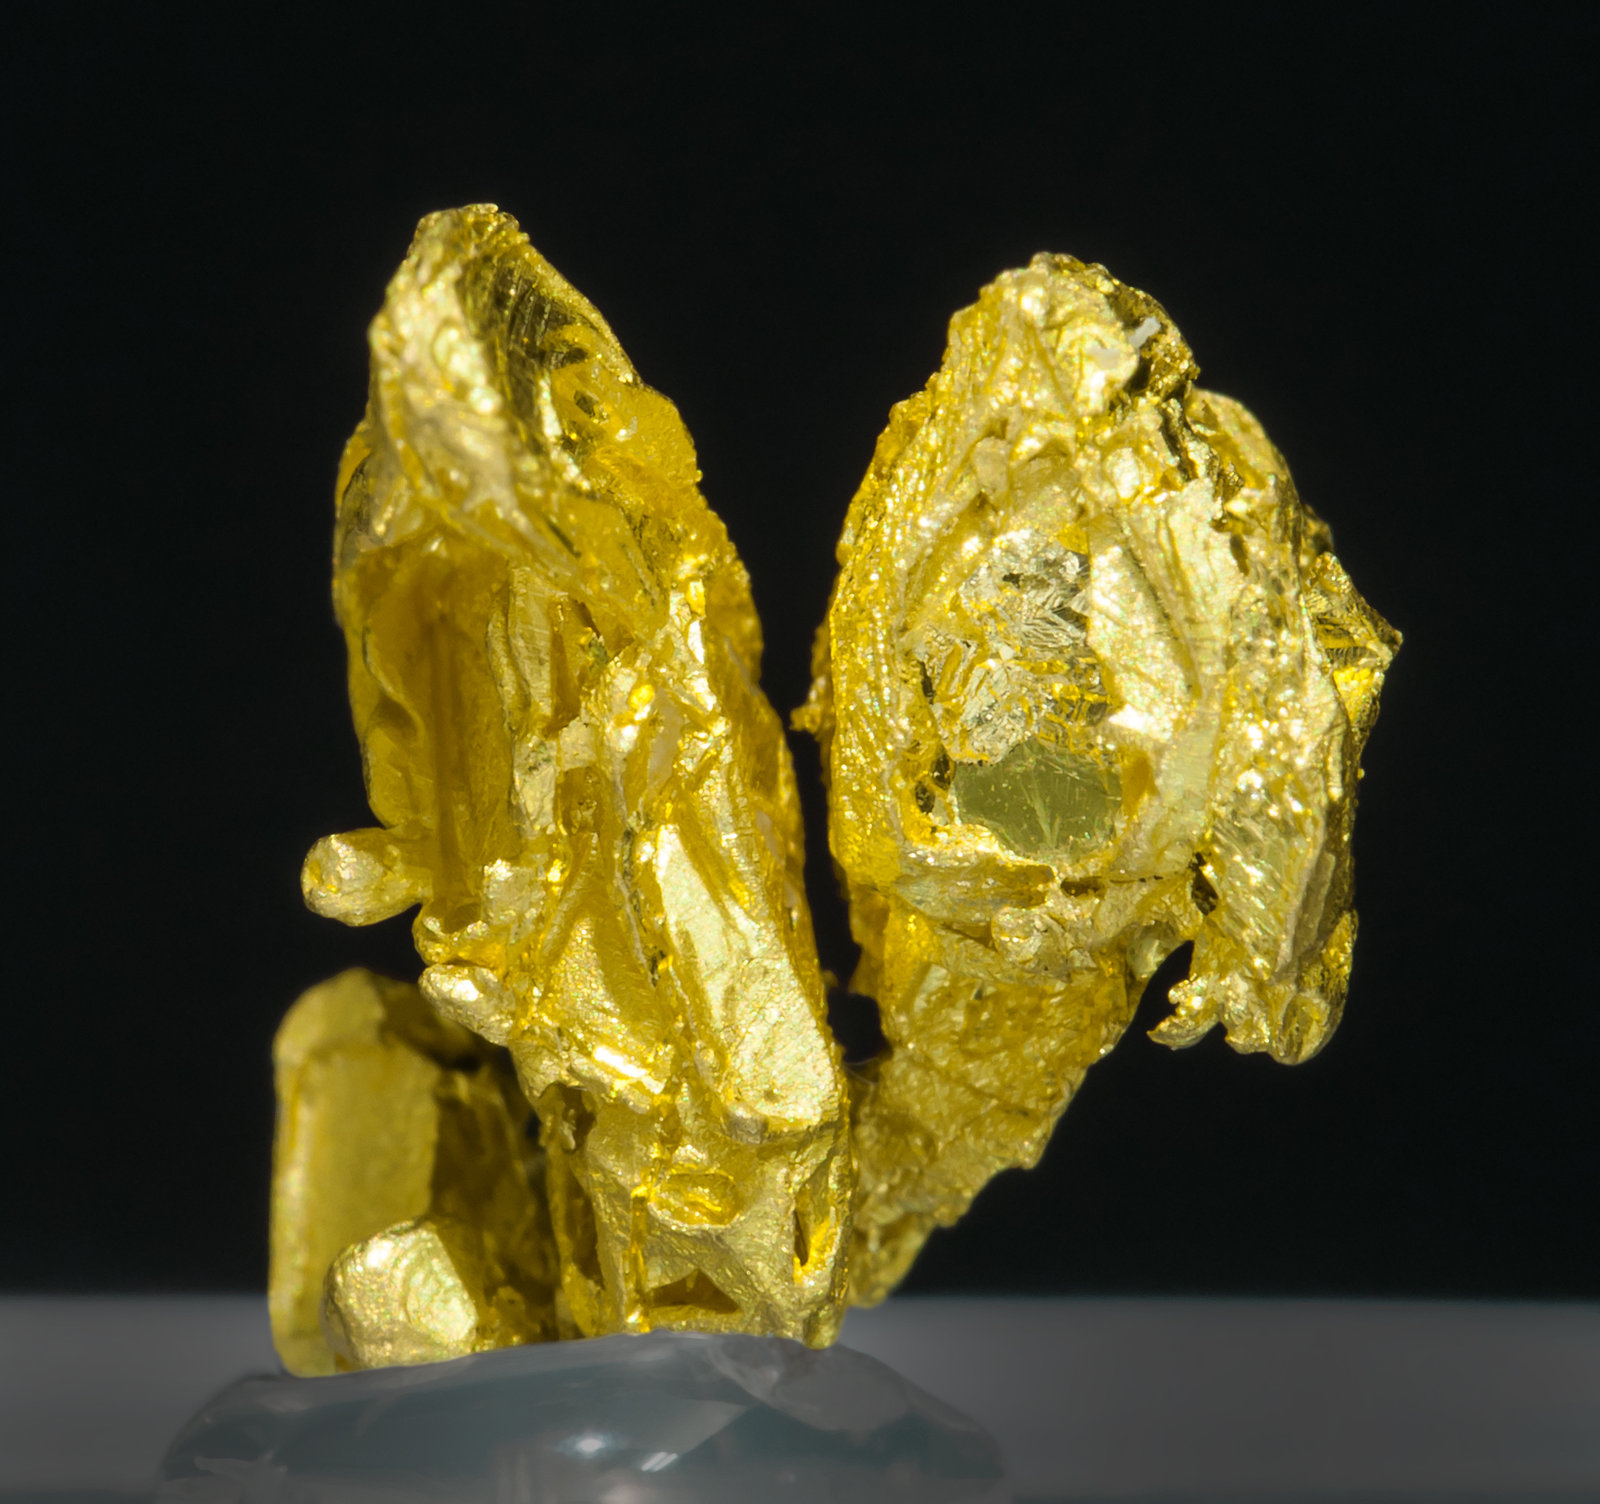 specimens/s_imagesZ7/Gold-TQ49Z7r.jpg